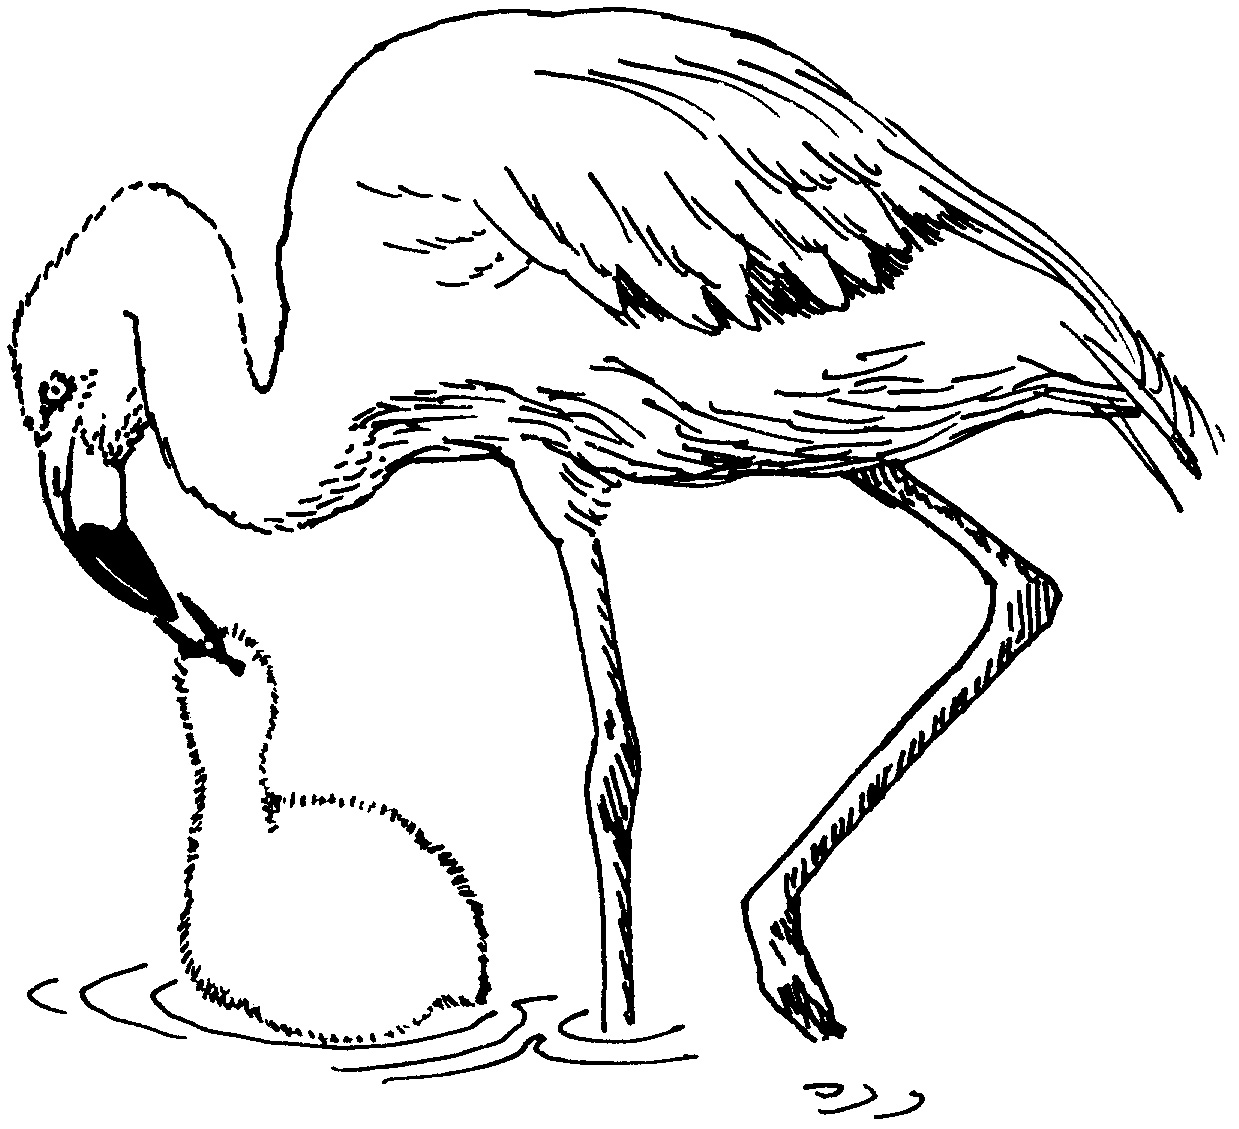 flamingo coloring page flamingos coloring pages to kids page coloring flamingo